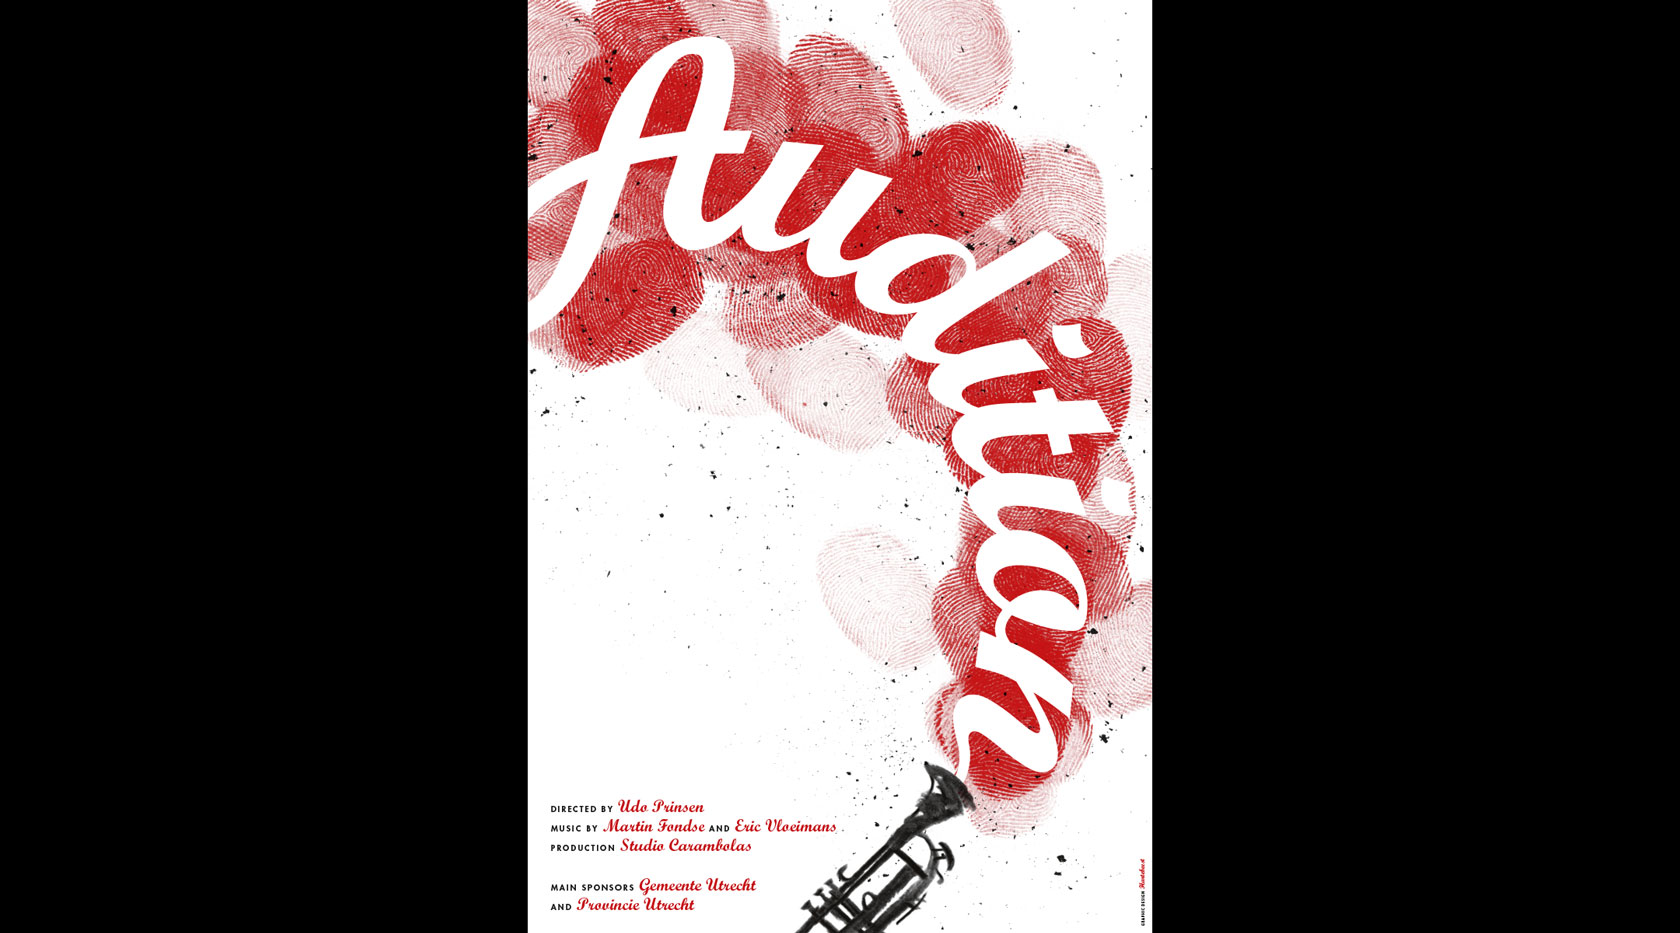 Filmposter Audition, by Hartebeest